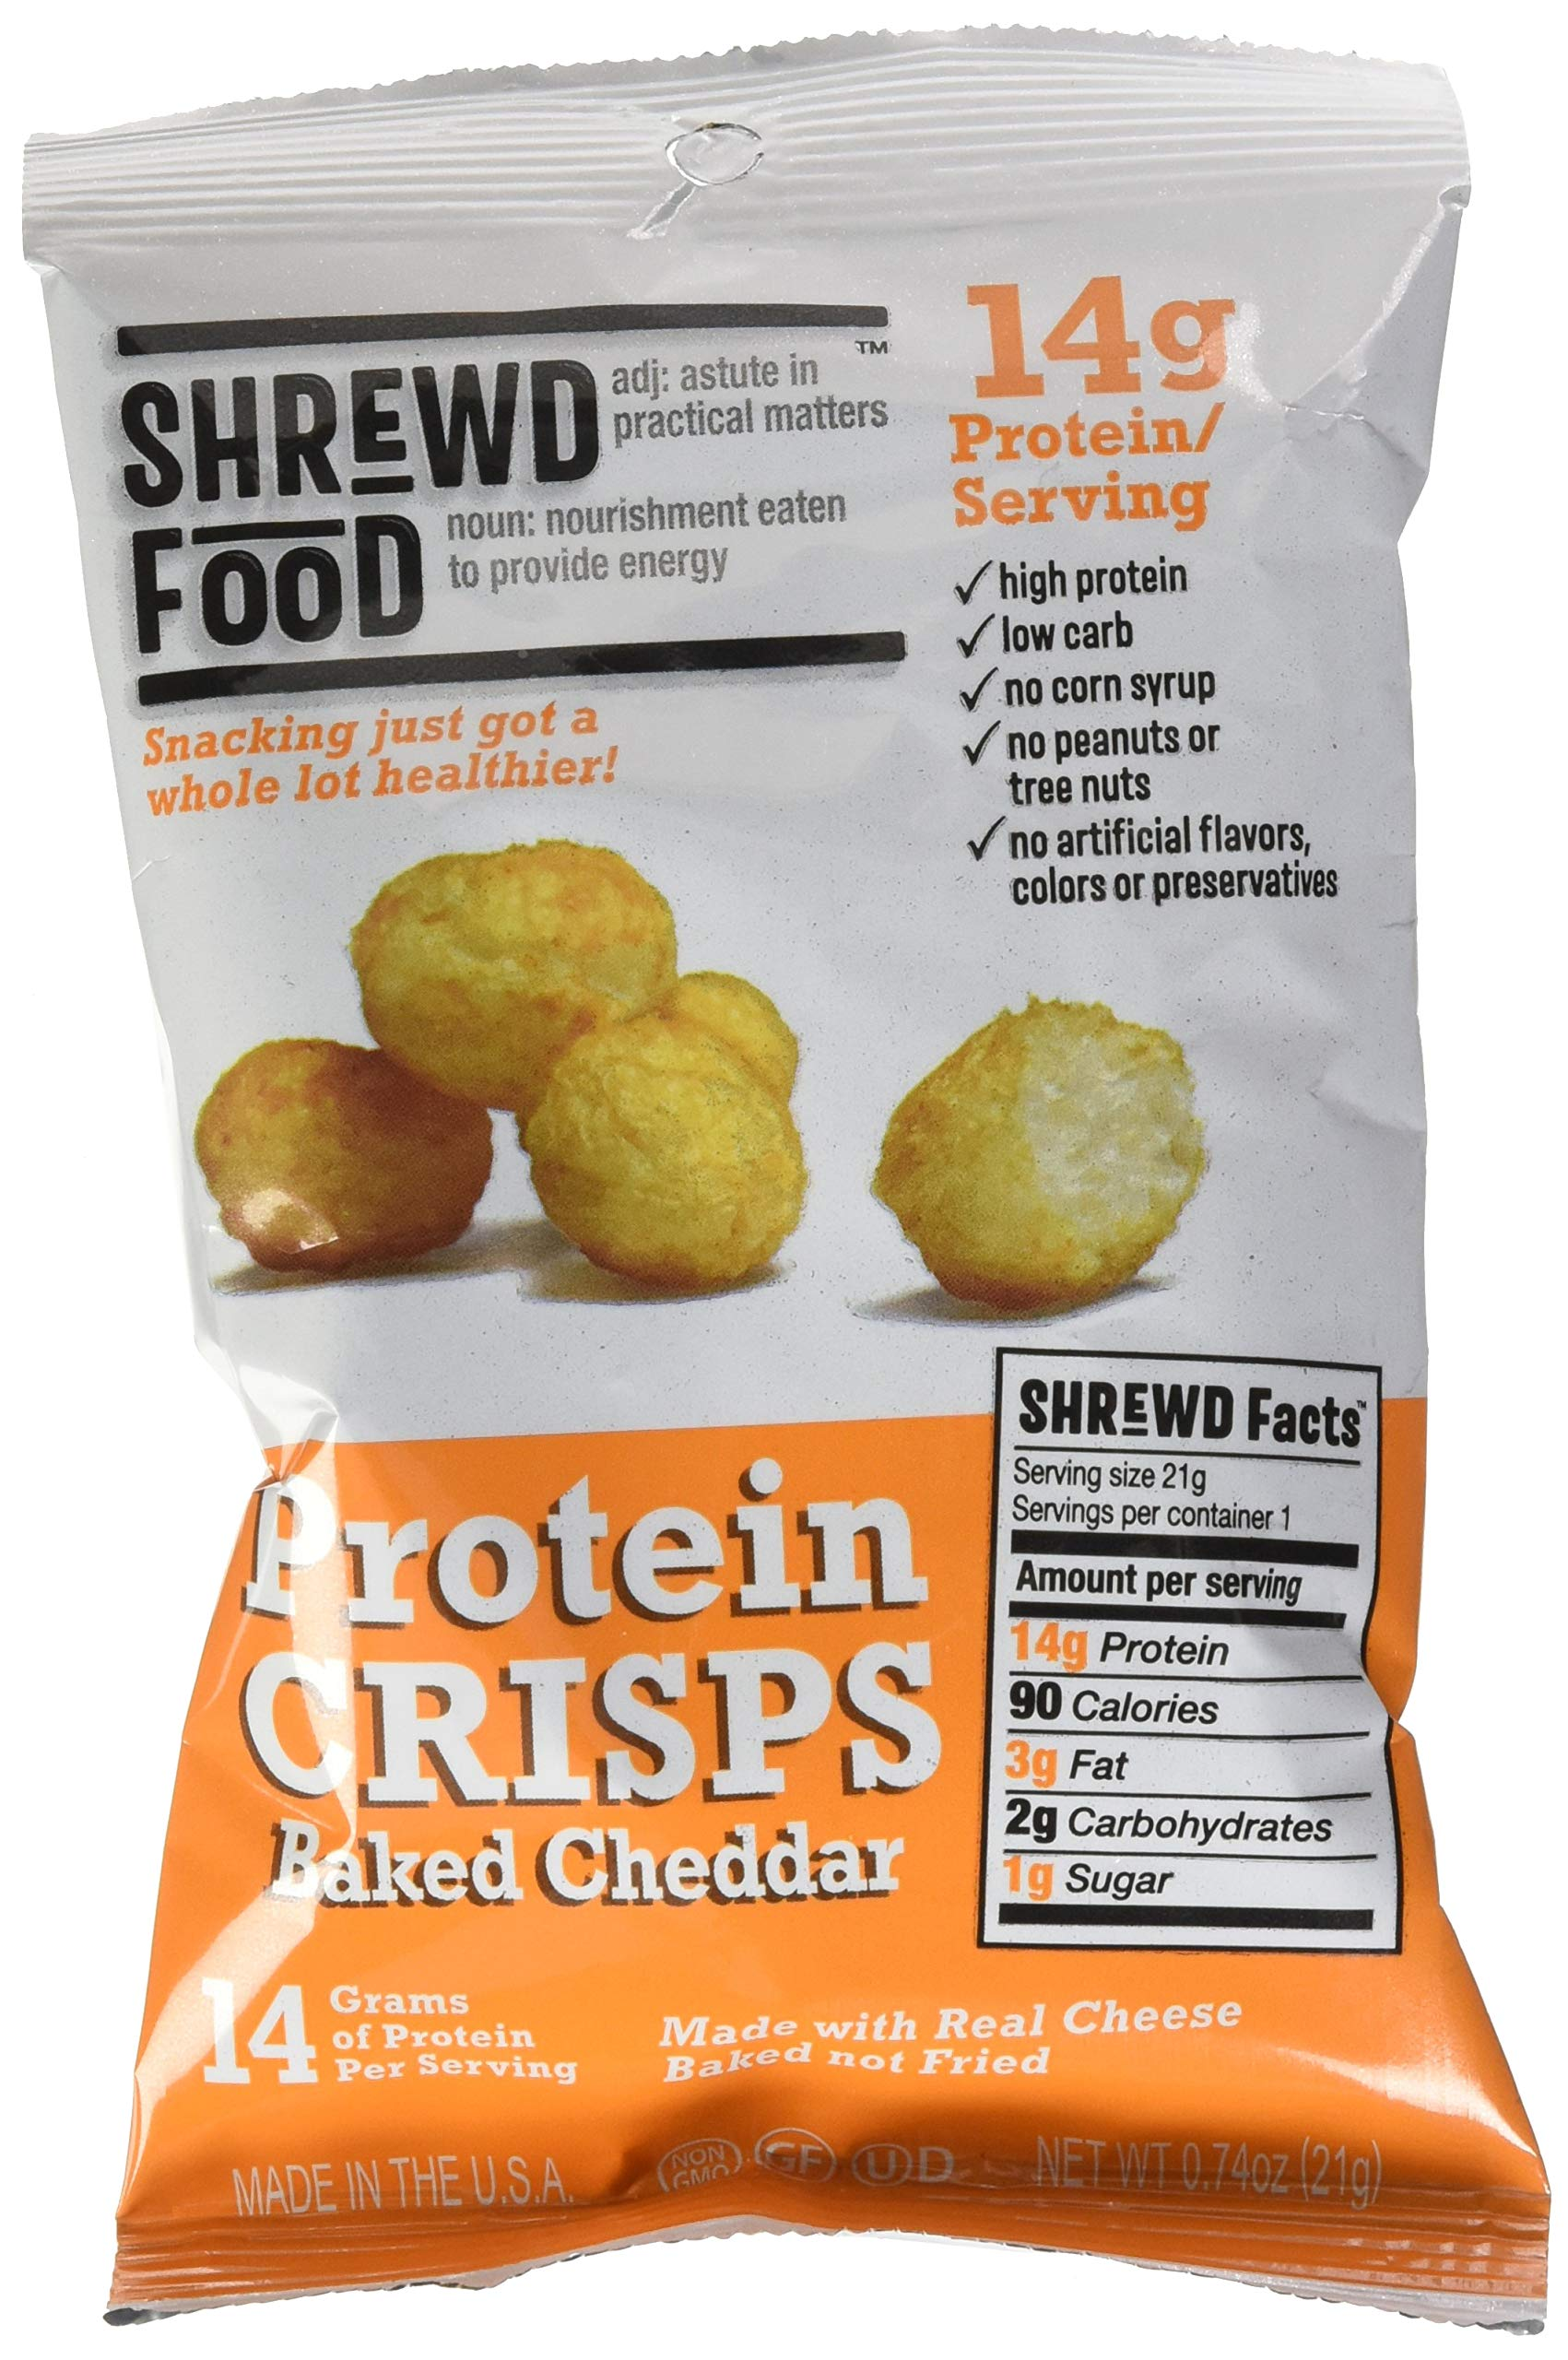 Shrewd Food Baked Cheddar Keto Protein Crisps | High Protein, Low Carb, Gluten Free Snacks | Real Cheese, No Artificial Flavors | Soy Free, Peanut Free (8-Pack of .74oz Bags)